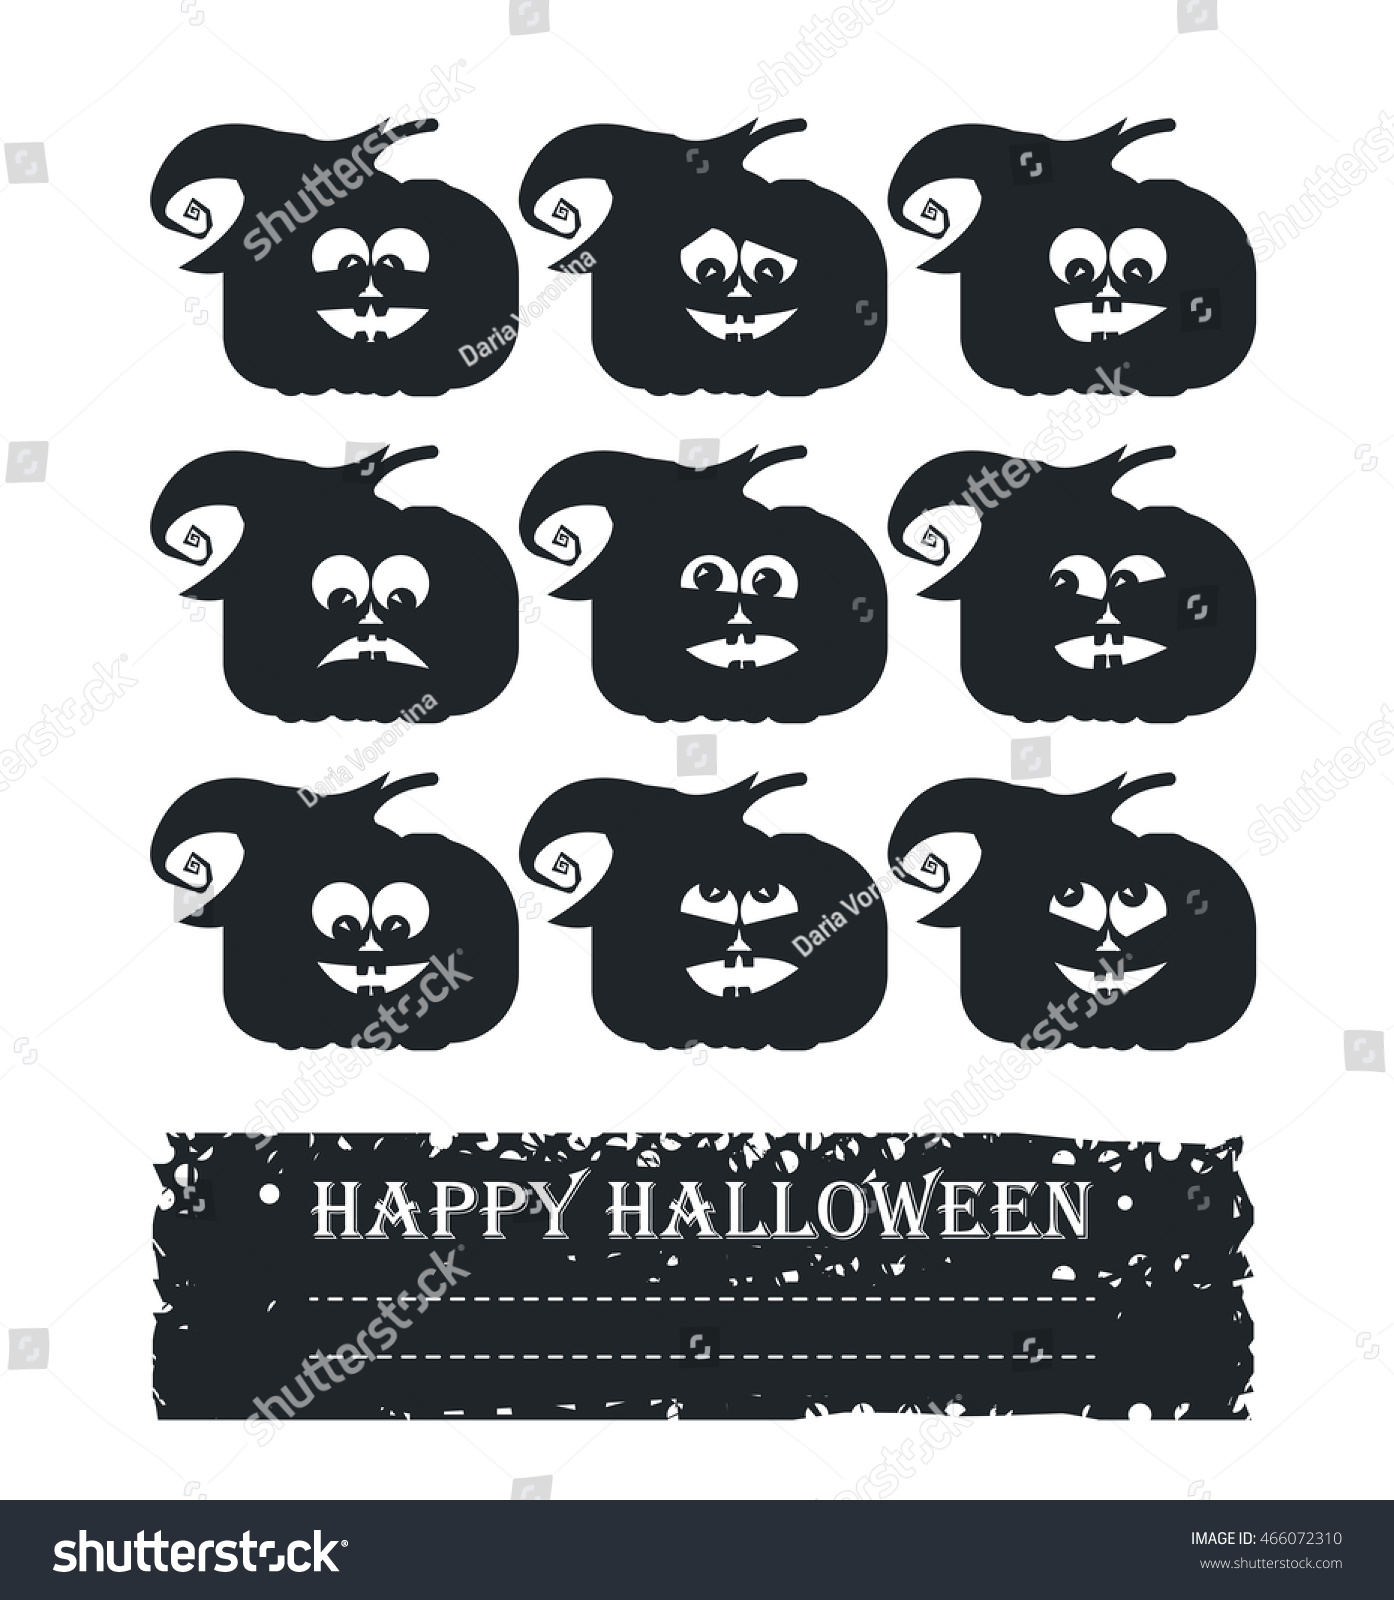 Stylish Halloween Card Doodle Pumpkin Face Stock Vector 466072310 ...